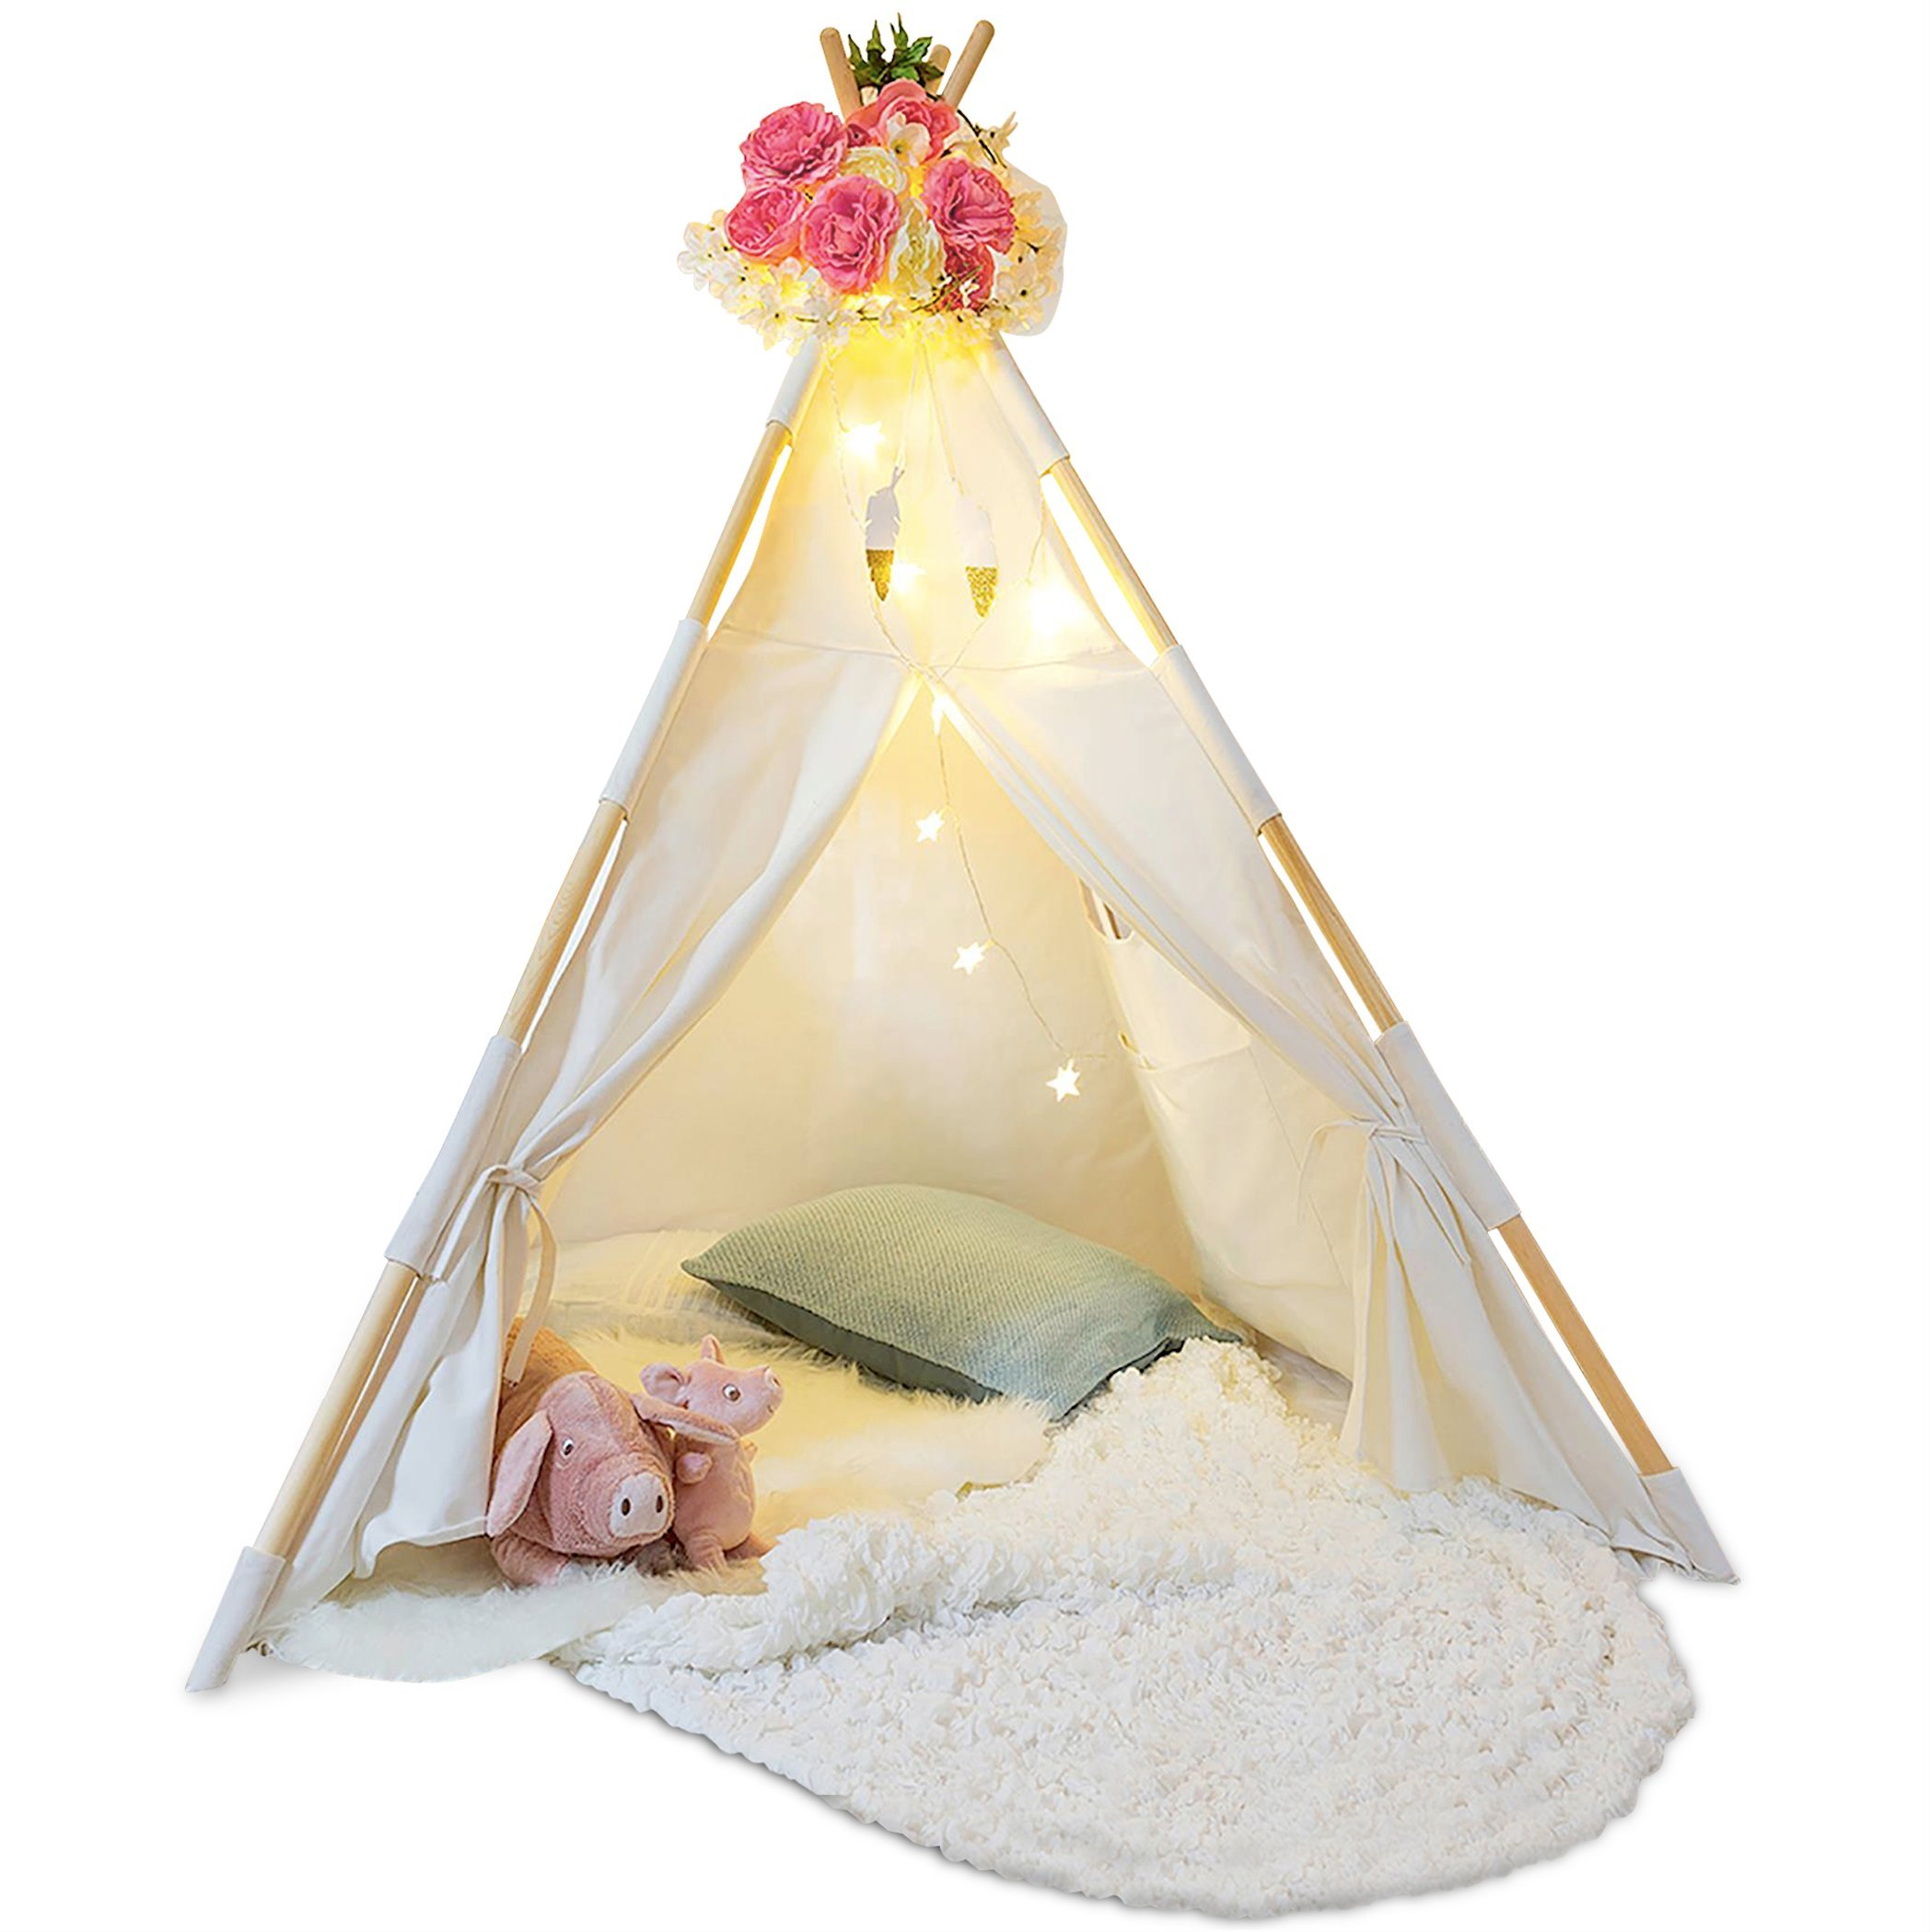 Kids Teepee Tent for Kids - Tee Pee Kids Tent - Kid Teepee Play Tent for Boys & Girls - Kids Play Tent - Kids Tent Indoor - Baby Teepee Tent for Boys - Play Teepee Tents for Kids - Tipi Tent Kids by Tazz Toys